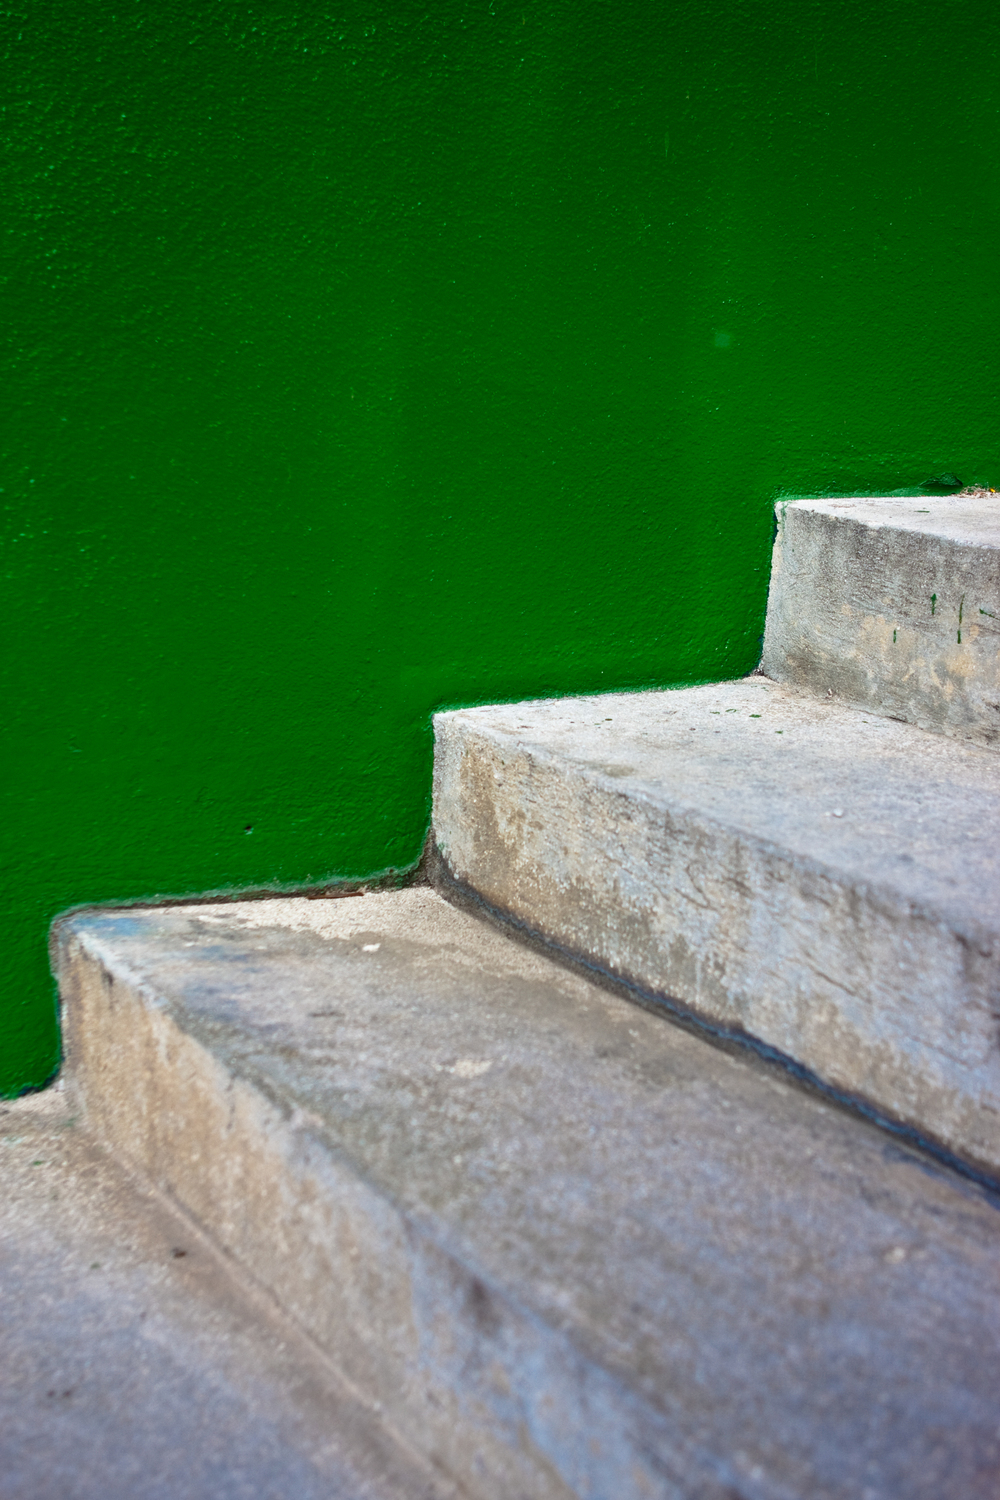 Green wall detail with stairs cutting a zig zag pattern through the foreground.